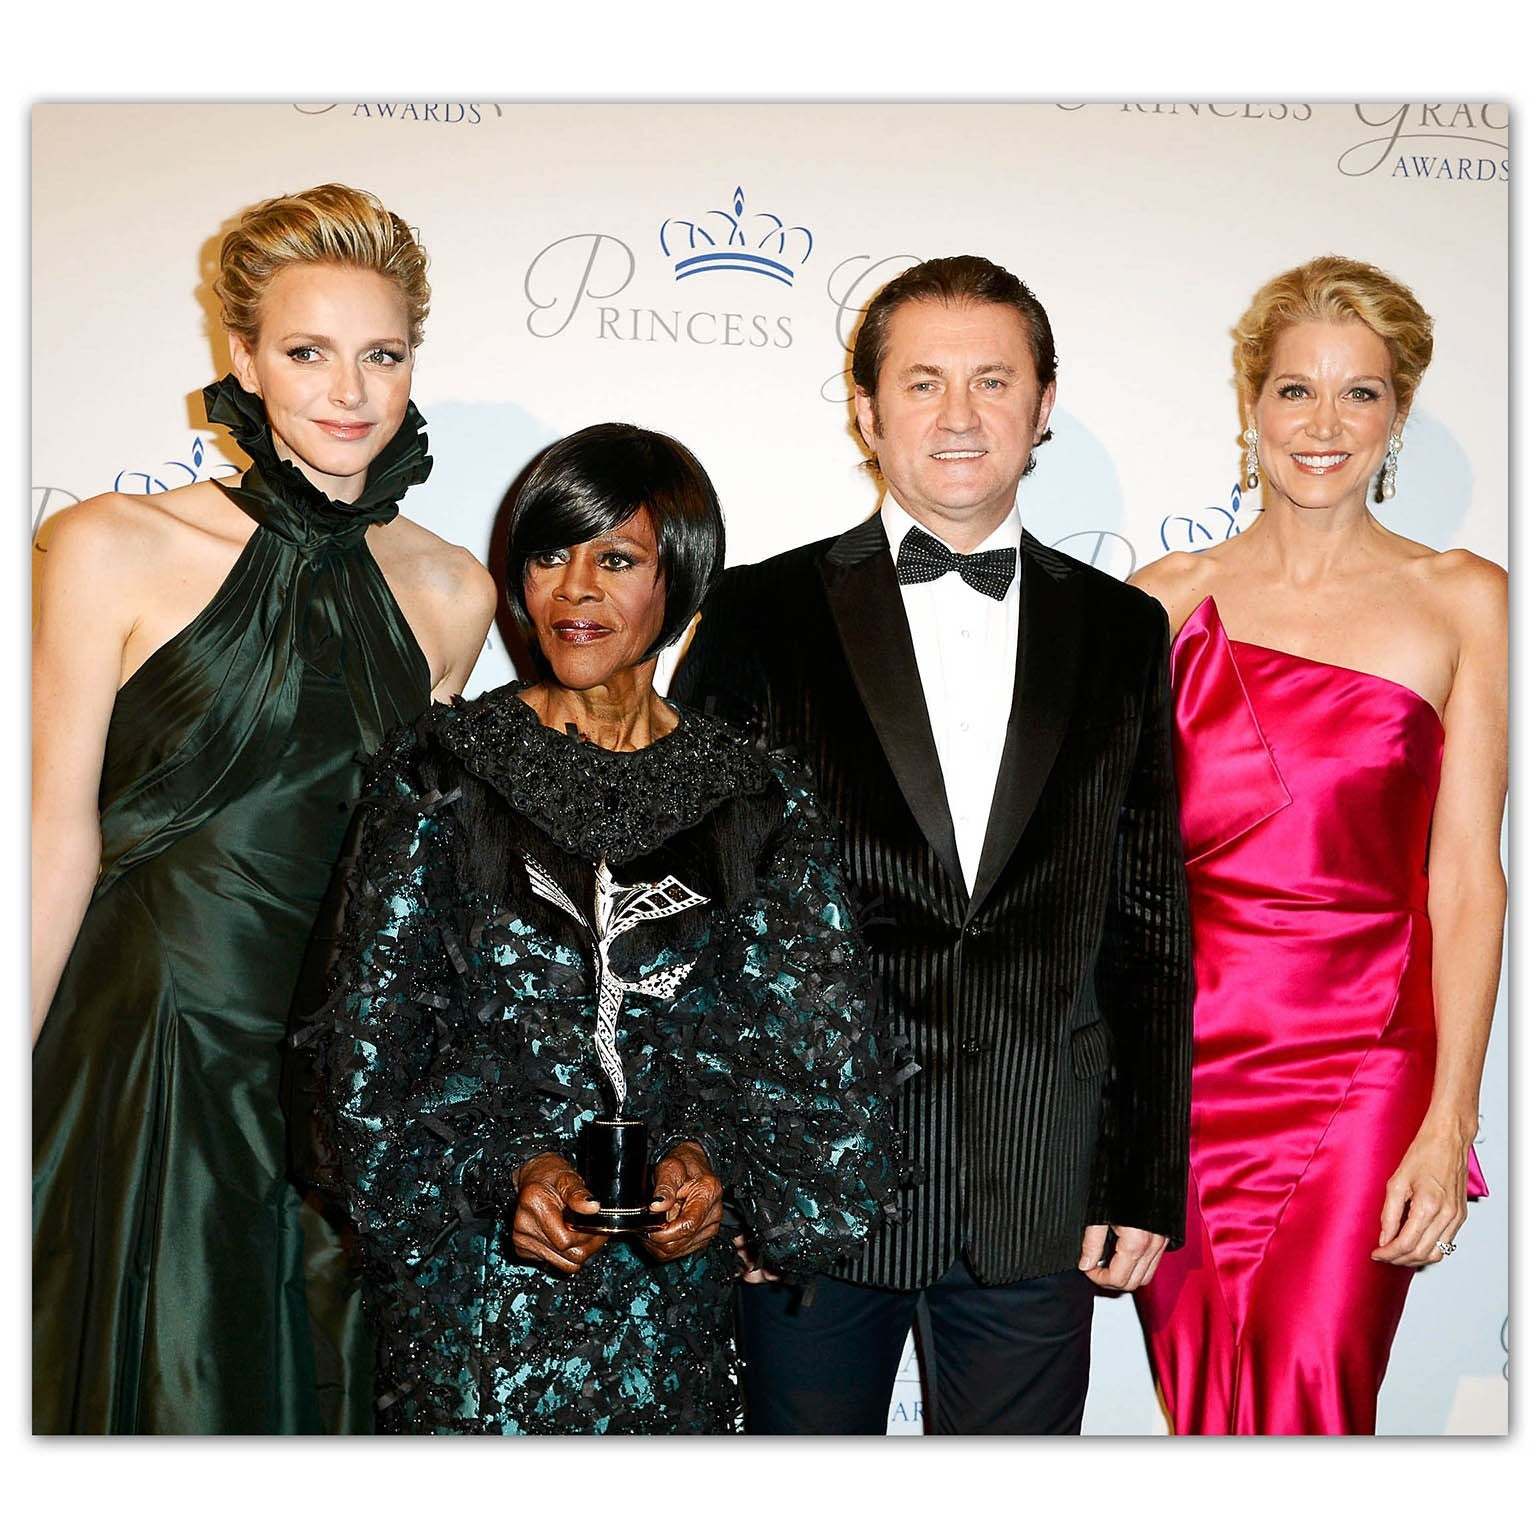 NEW YORK, NY – Princess Charlene of Monaco, Paula Zahn and Alex Soldier present Cicely Tyson with Princess Grace Award, designed and created by Alex Soldier.